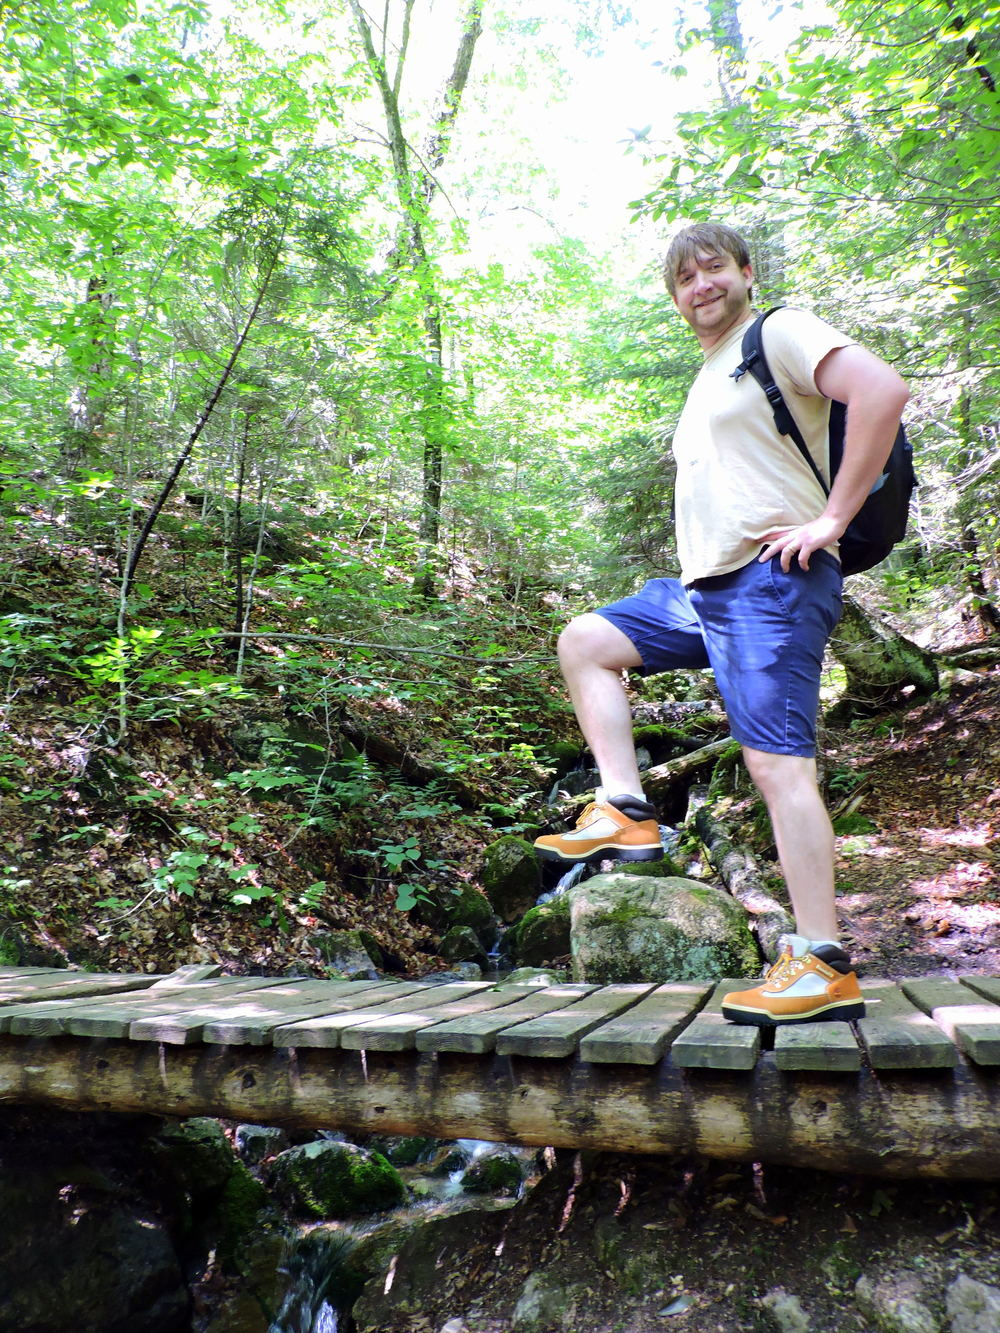 In this photo, Josh demonstrates not only his superb hiking skills, but also his new pair of Timberland hiking boots.